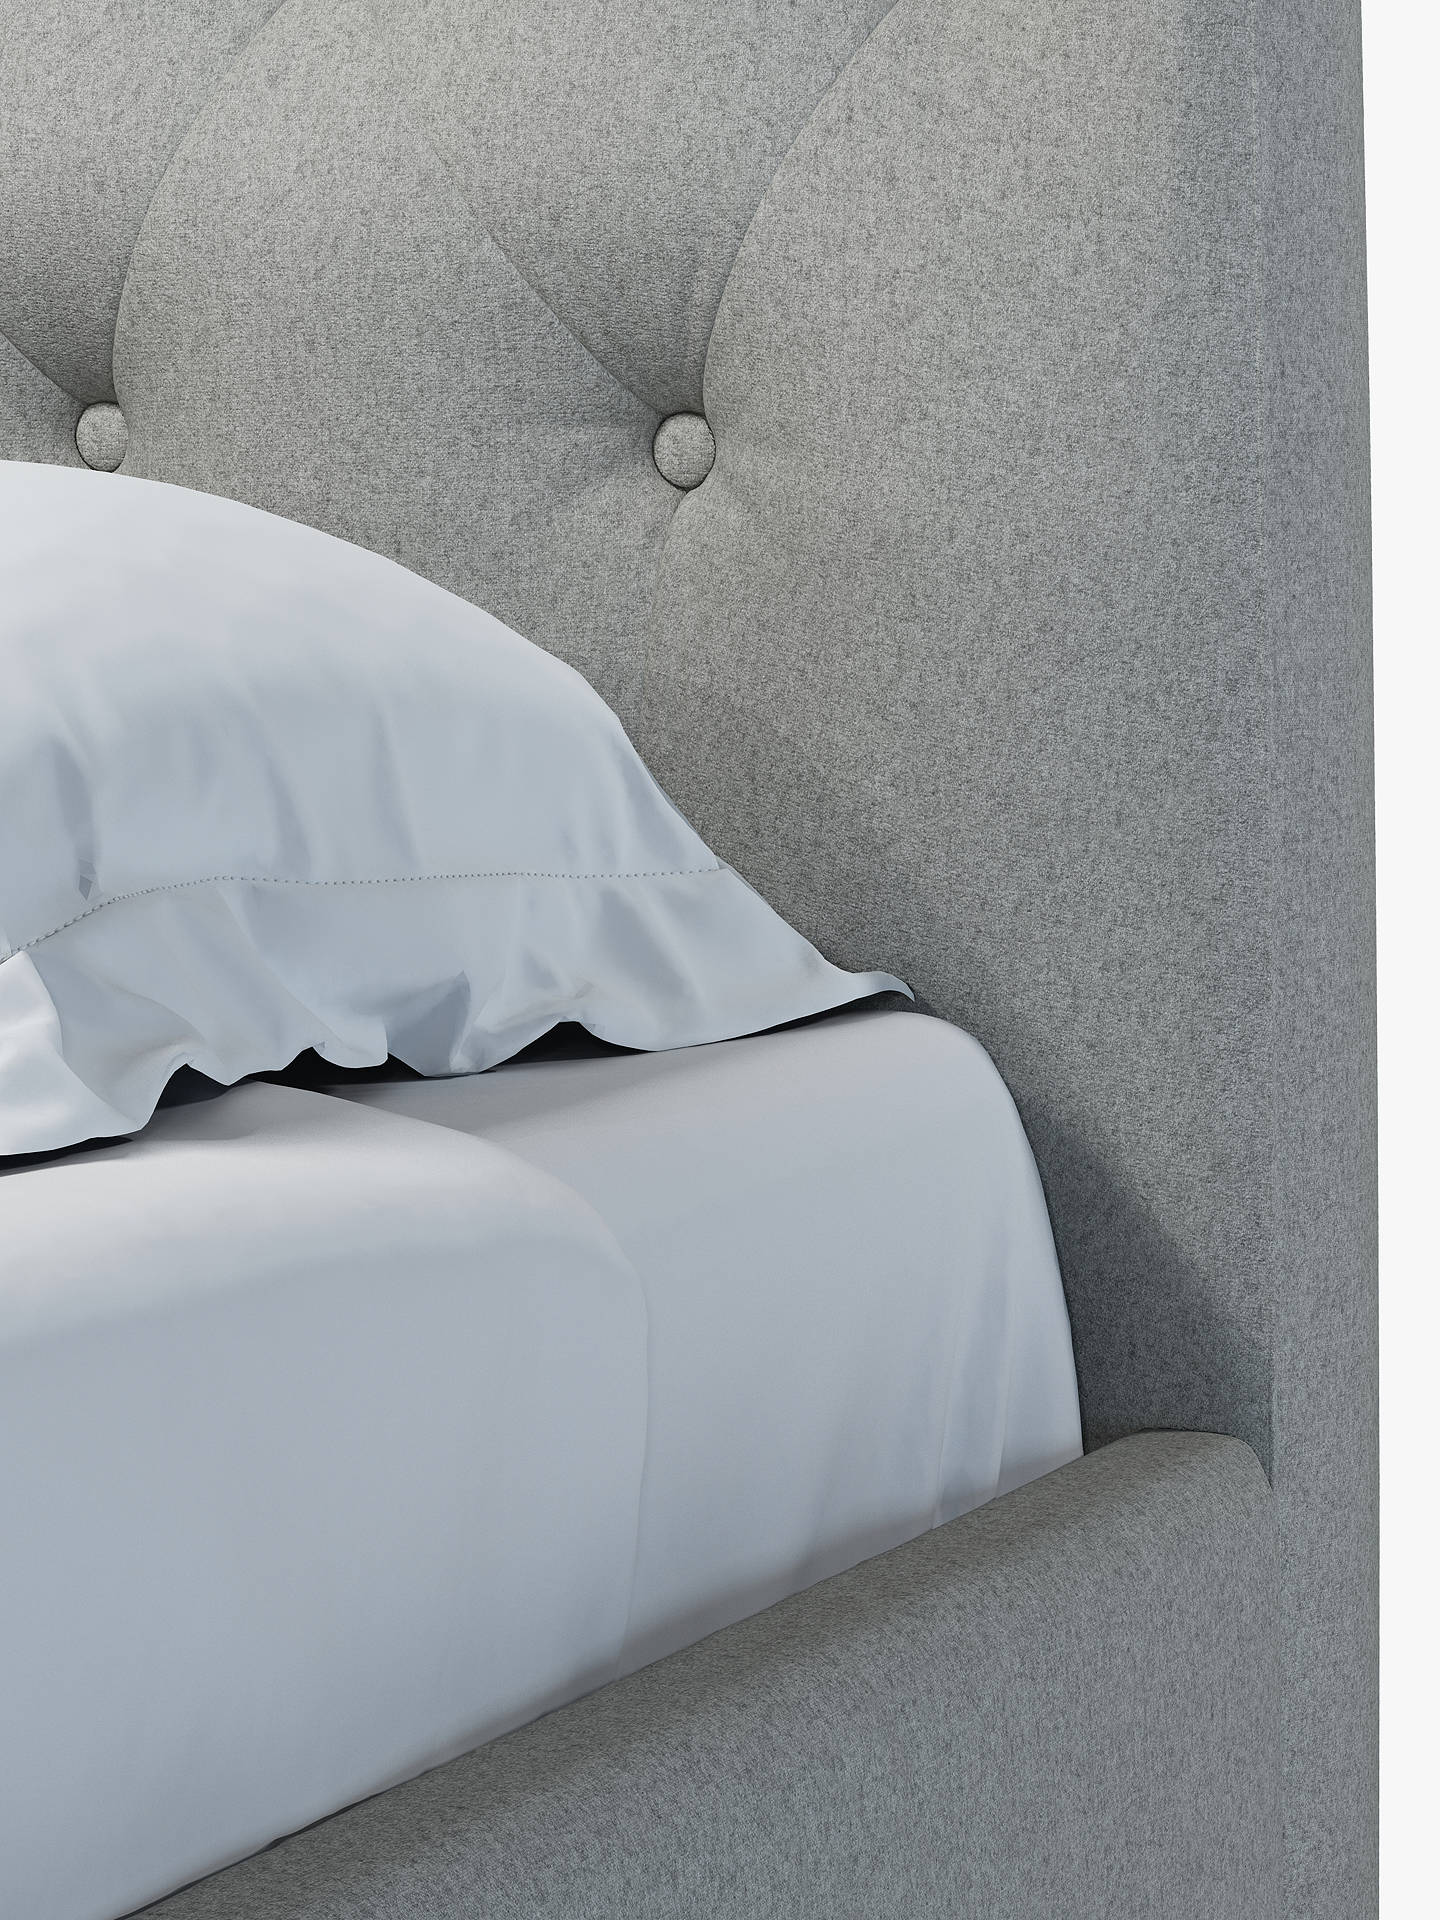 Buy John Lewis & Partners Rouen Upholstered Bed Frame, Double, Mole Grey Online at johnlewis.com